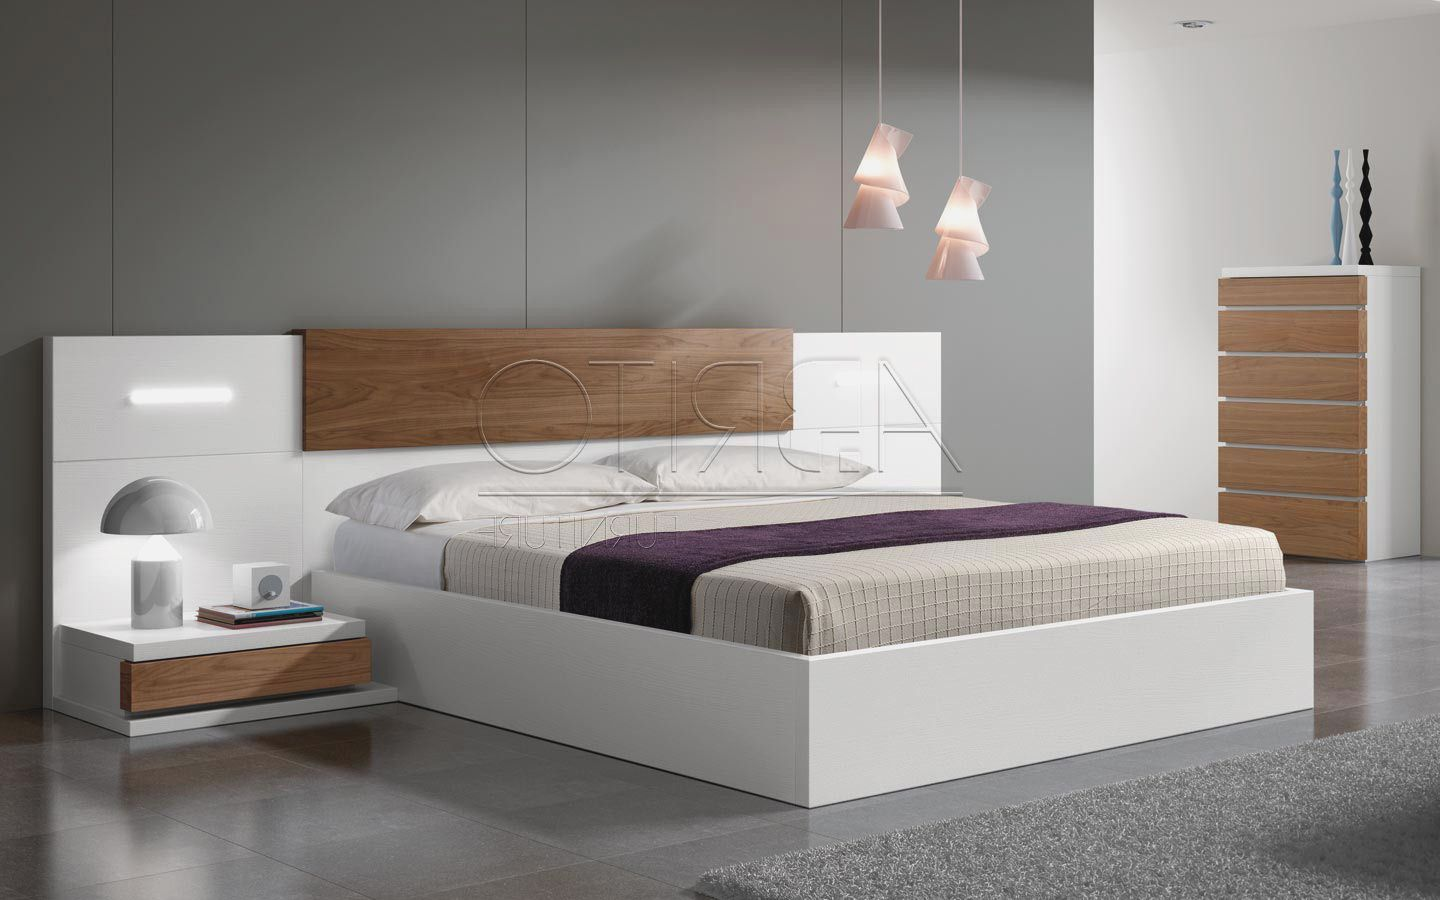 Double Bed Designs With Storage Images More Picture Double Bed